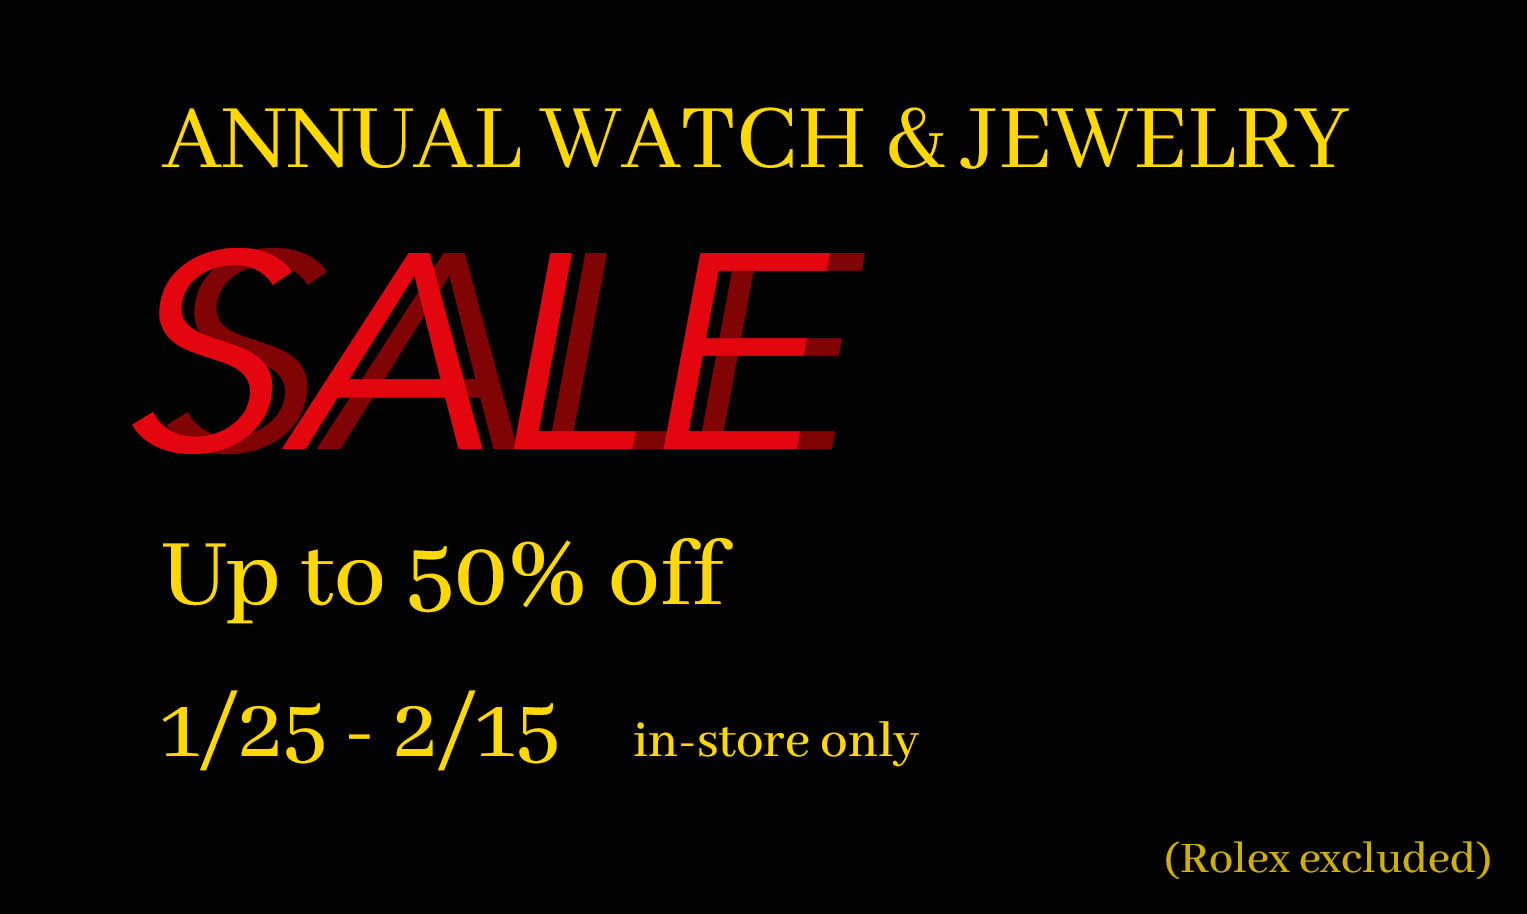 Manfredi Annual Watch & Jewelry Sale Up to 50% OFF 1/25 - 2/15